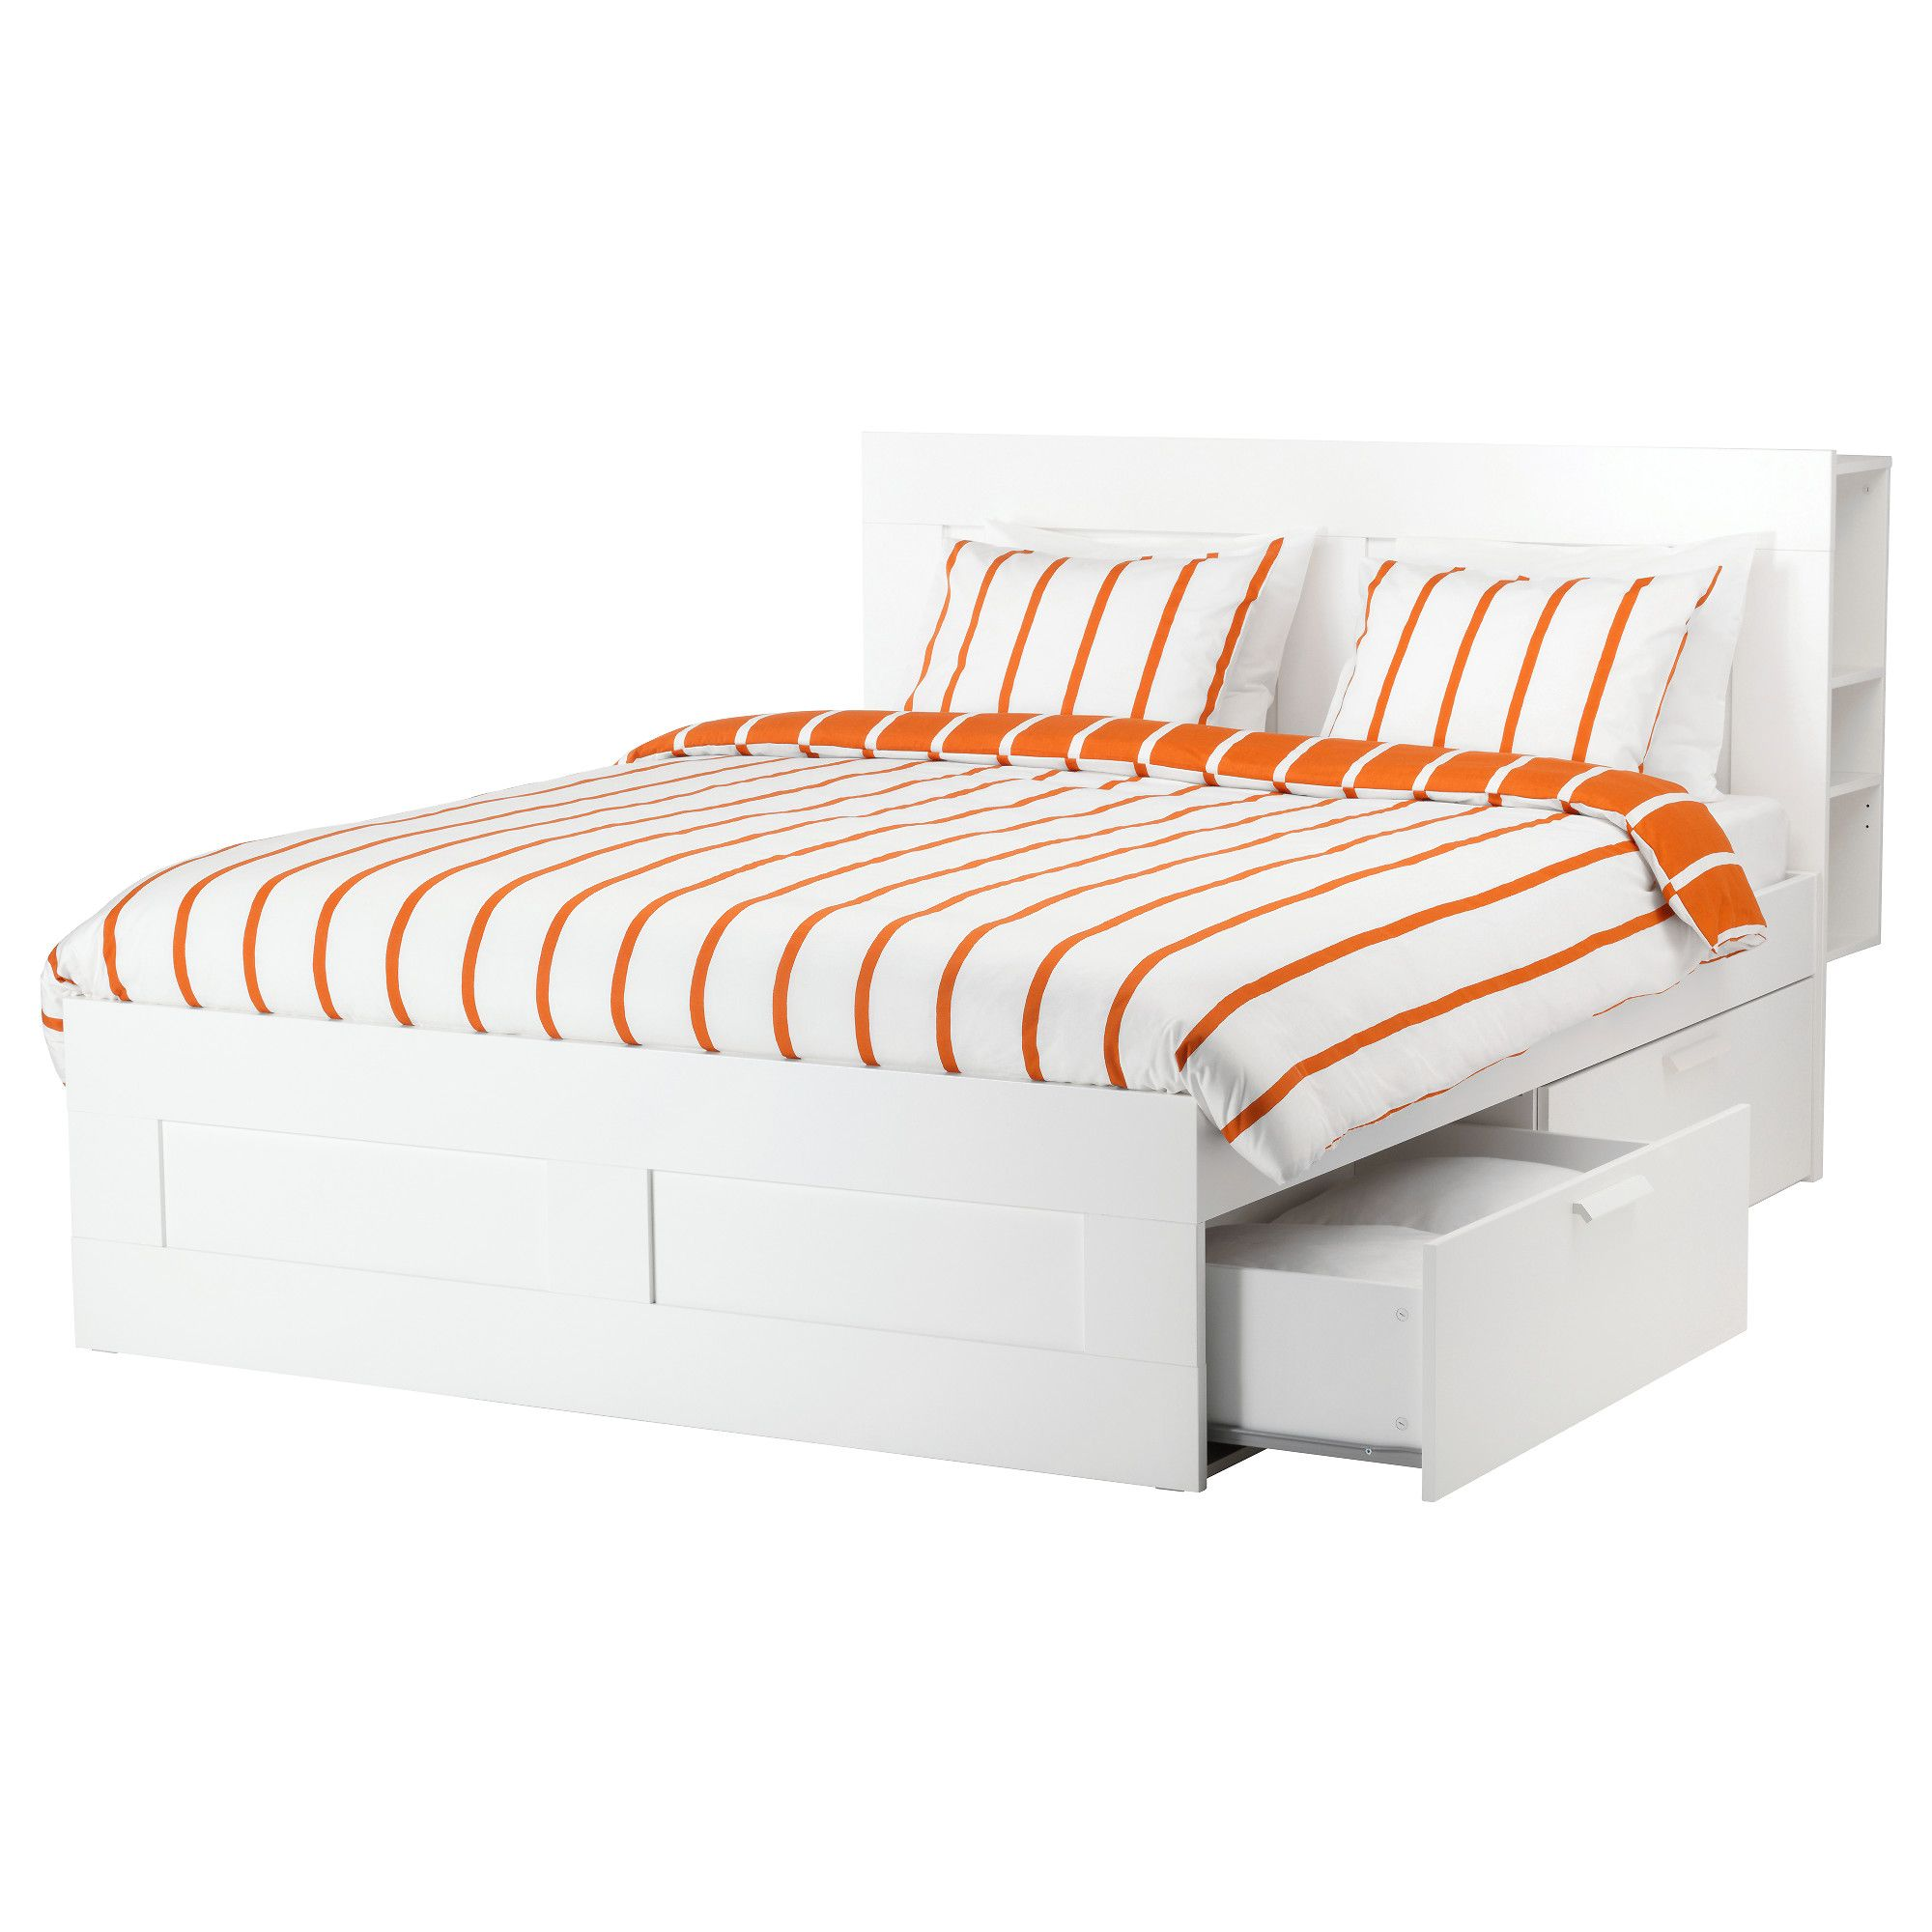 Ikea Brimnes Bett 160x200 Brimnes Bed Frame With Storage Headboard White Luröy New